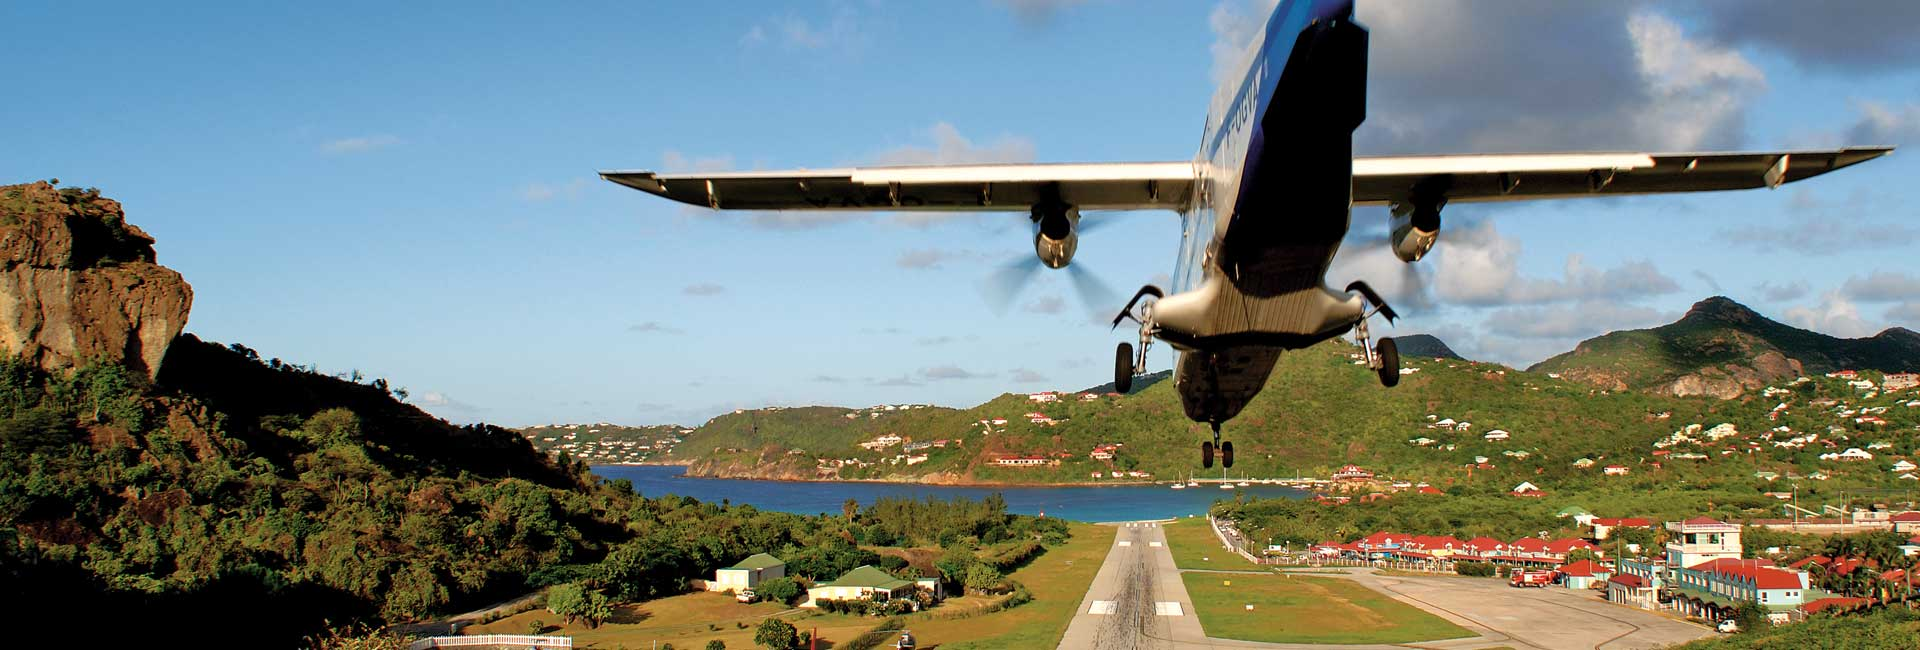 arrival at st barth